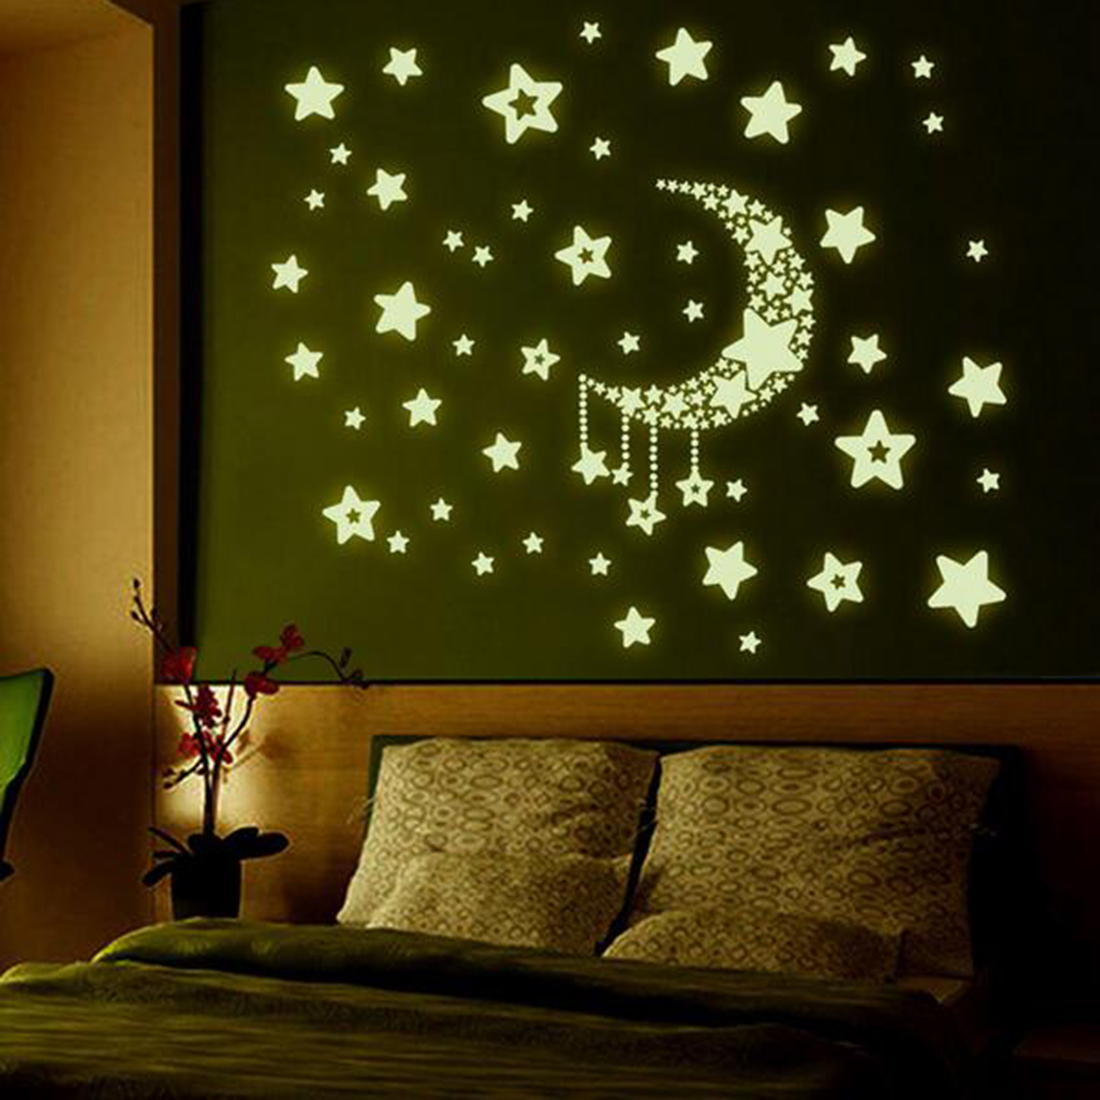 Fashion Night Light Luminous Stickers Home Decor Home Decoration Wall Sticker Rooms Wall Decals